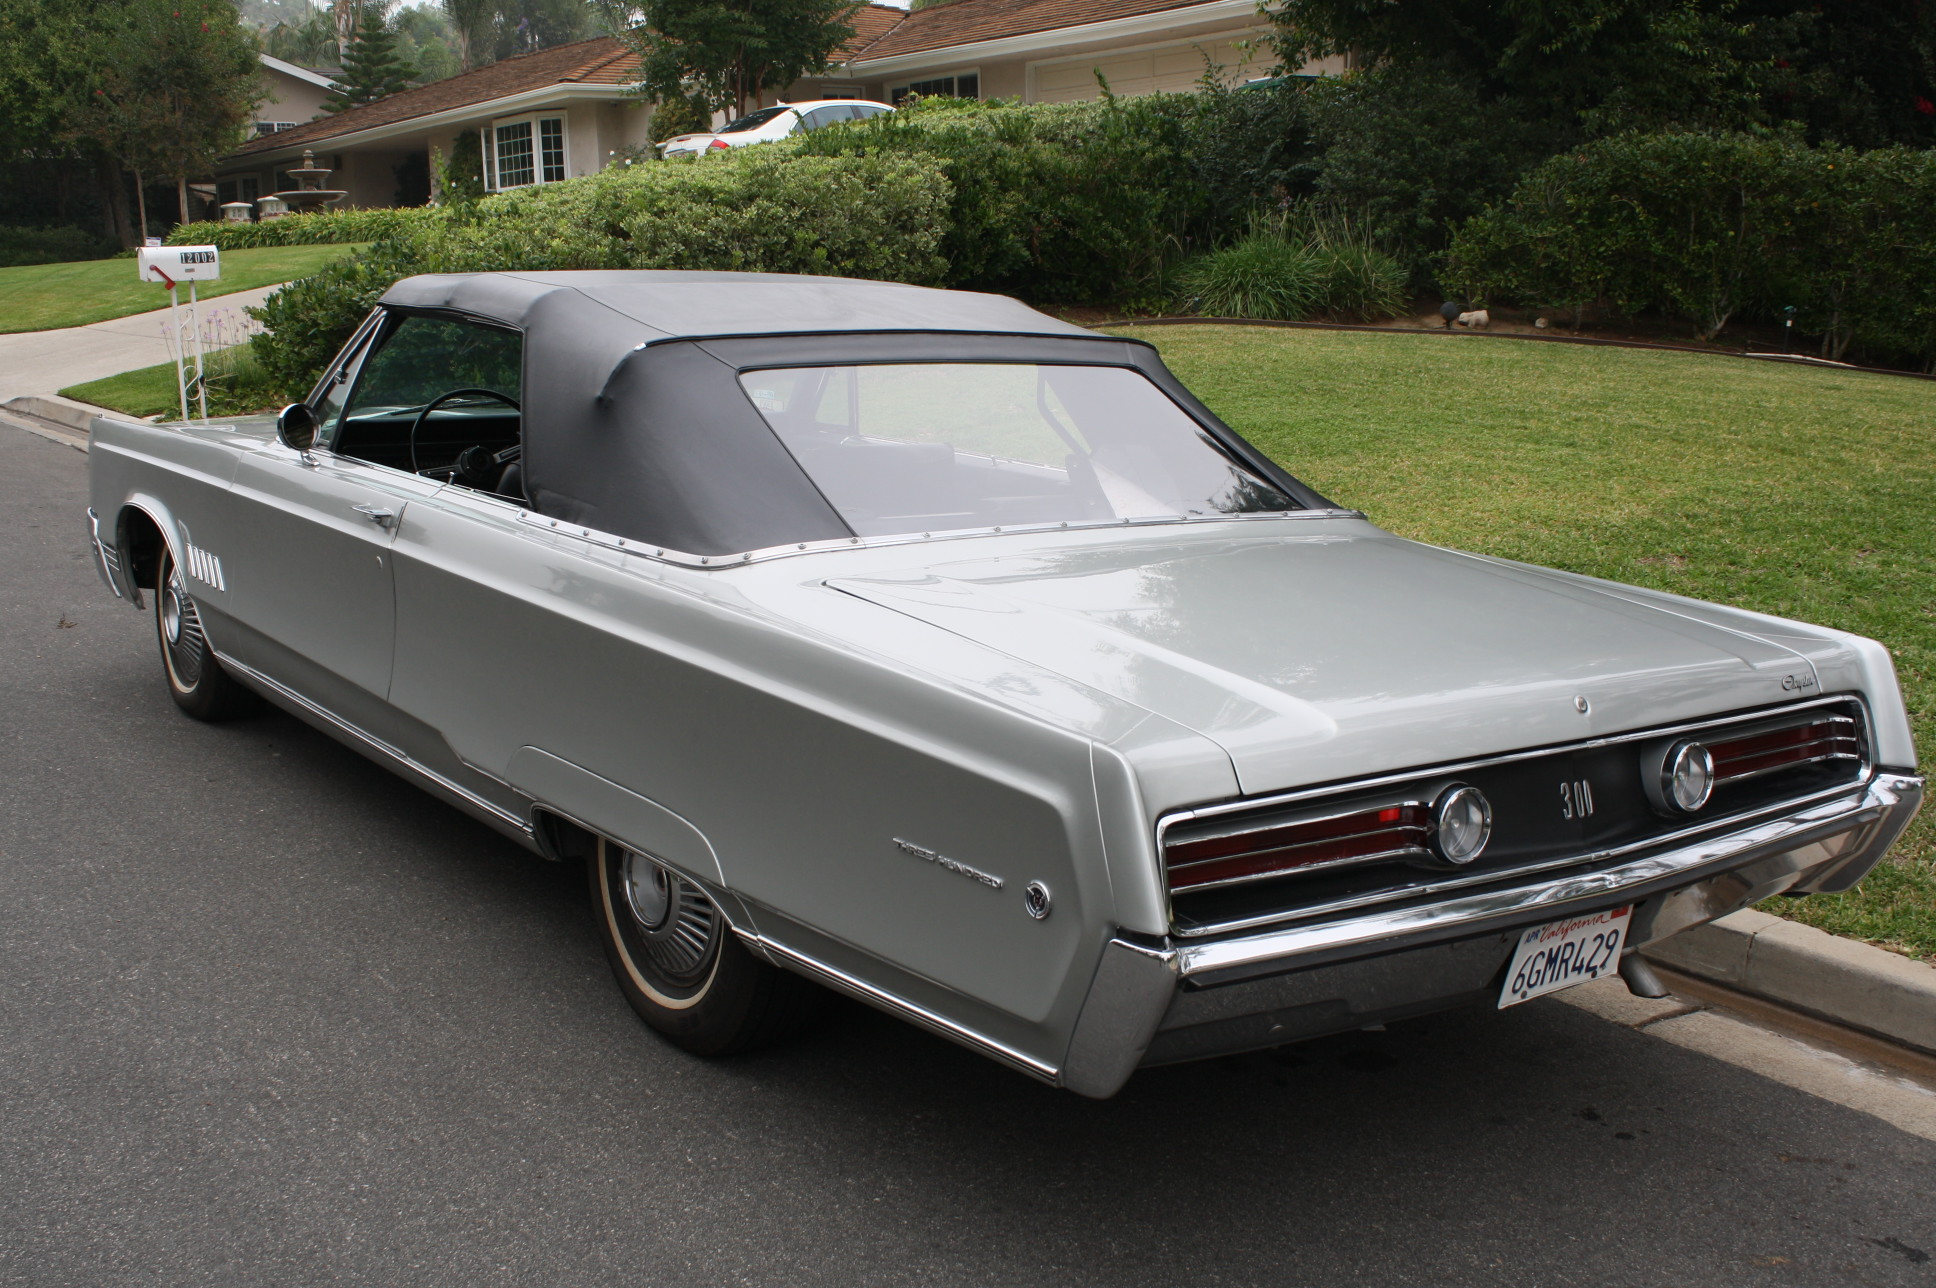 1968 CHRYSLER 300 CONVERTIBLE | The Vault Classic Cars